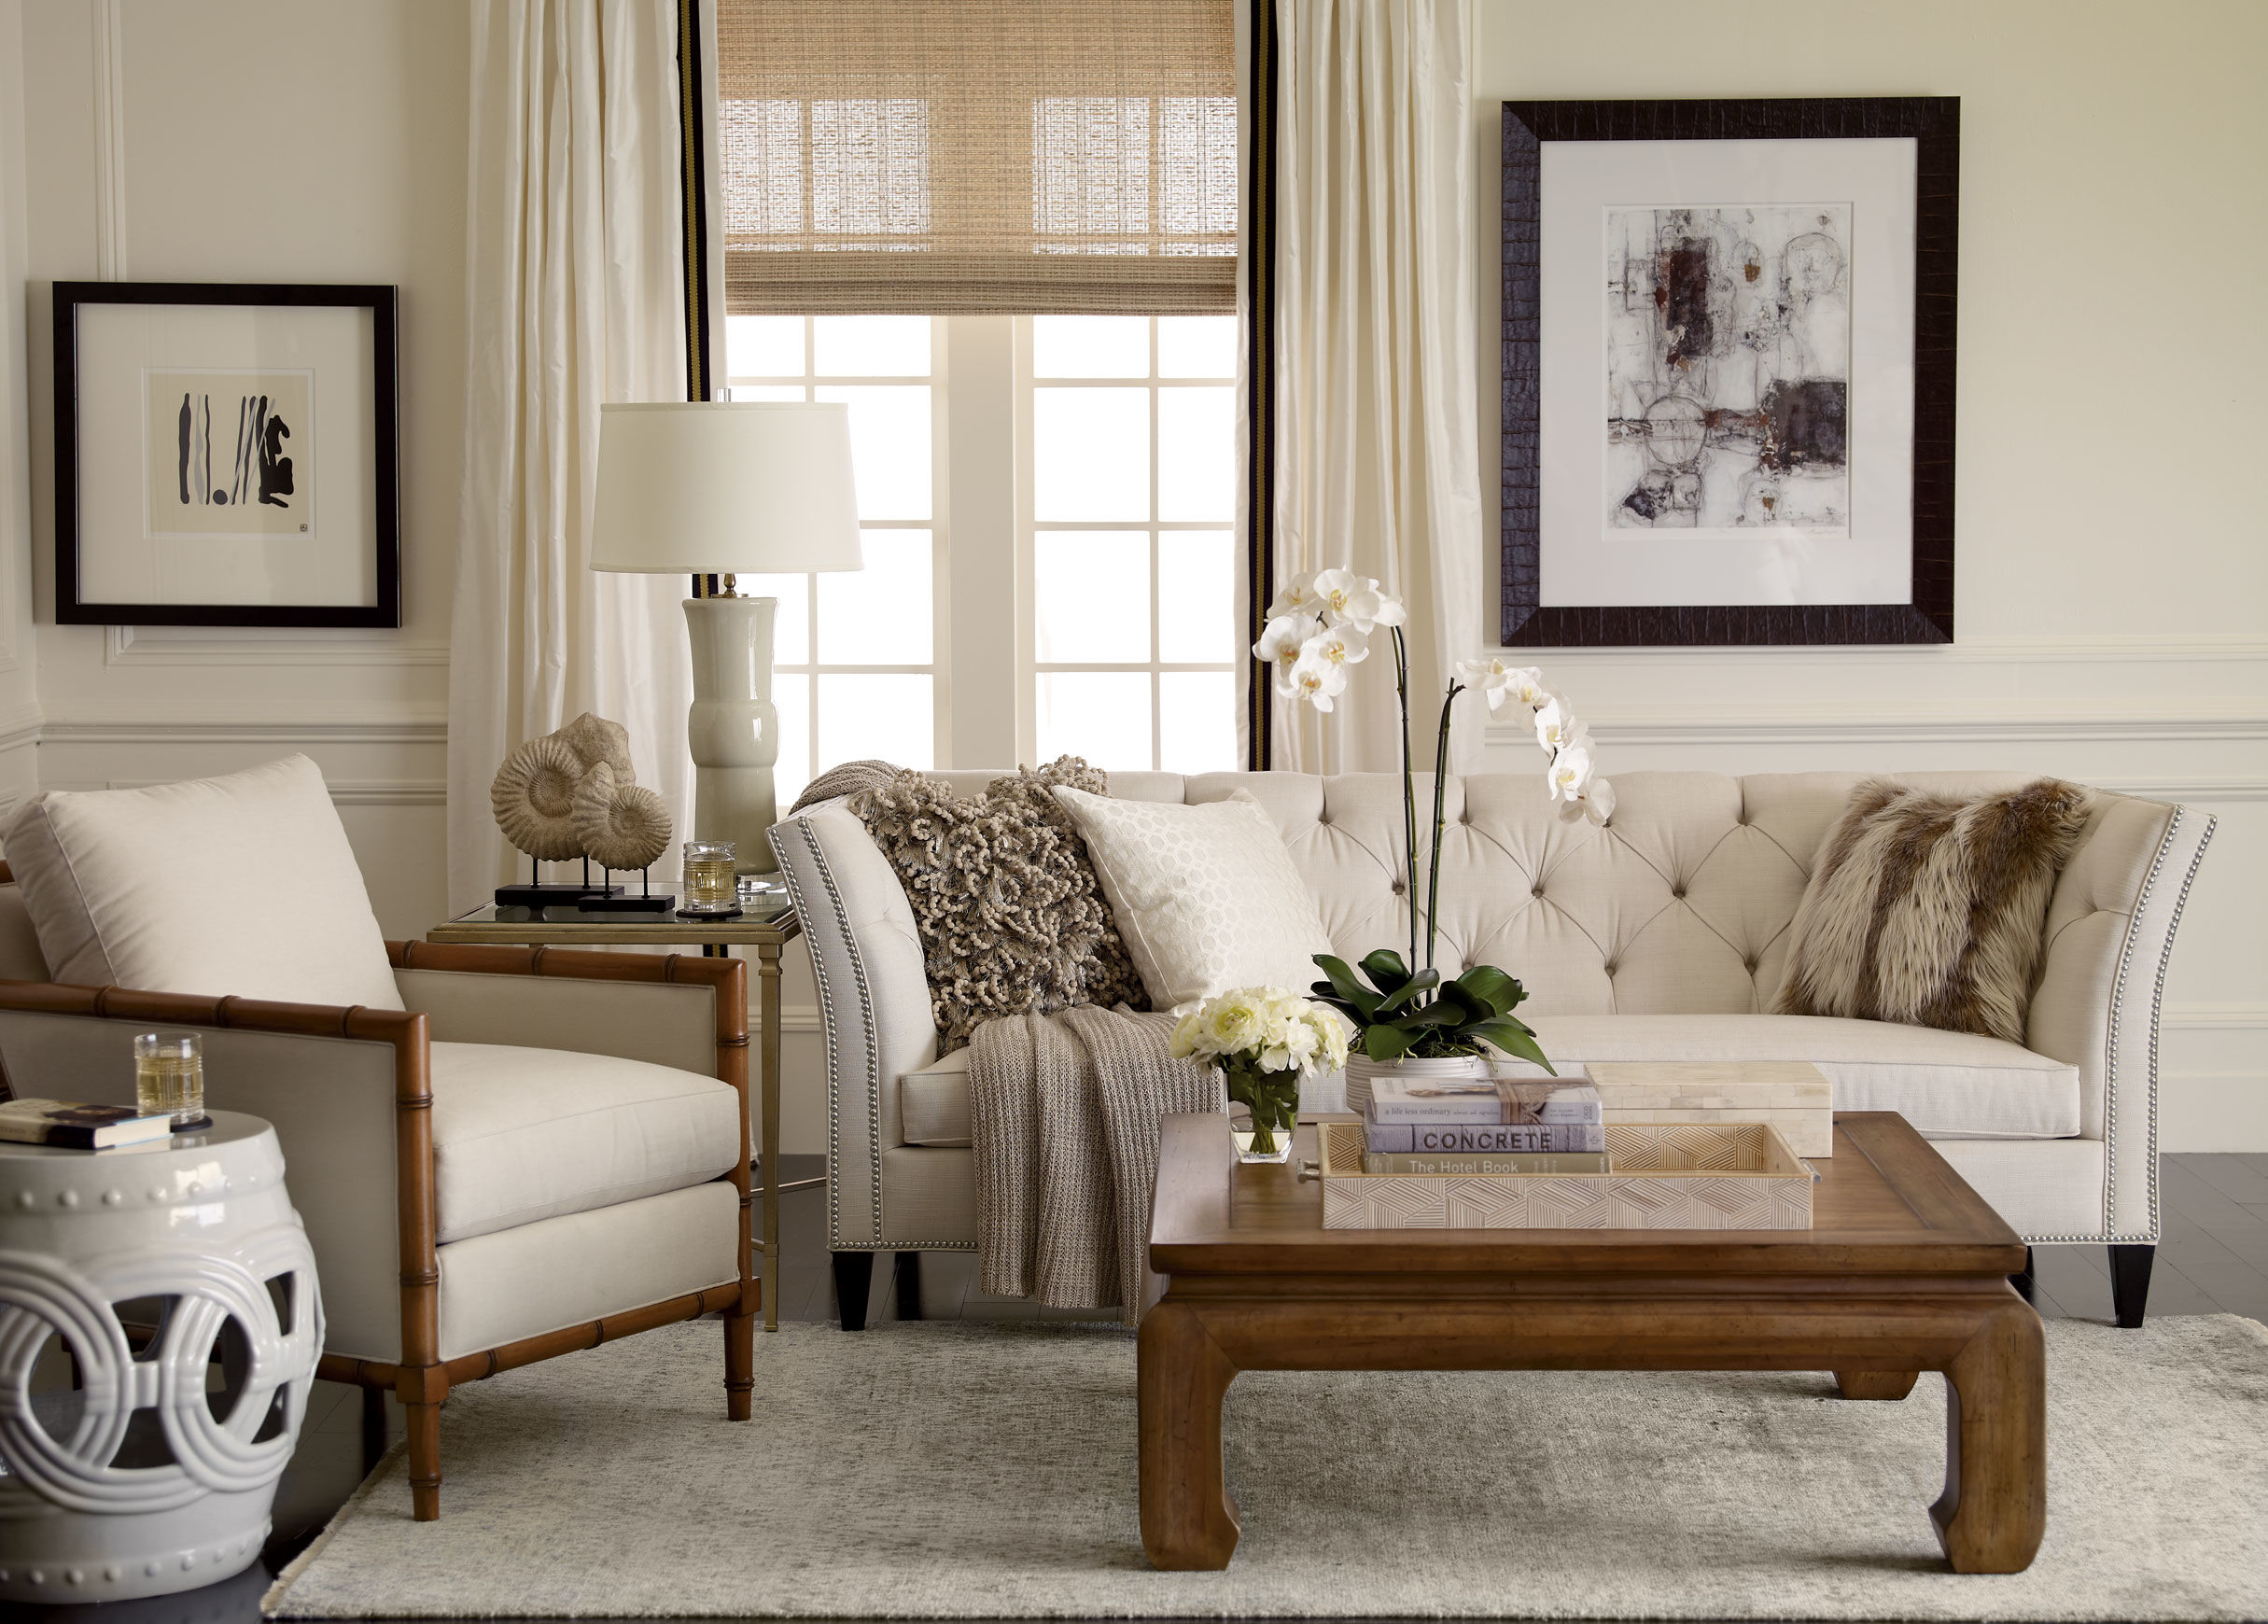 Classy Modern Living Room Ideas With White Tufted Sofa And Cozy Armchair  Plus Soft Rug Area · Ethan Allen ... Part 53